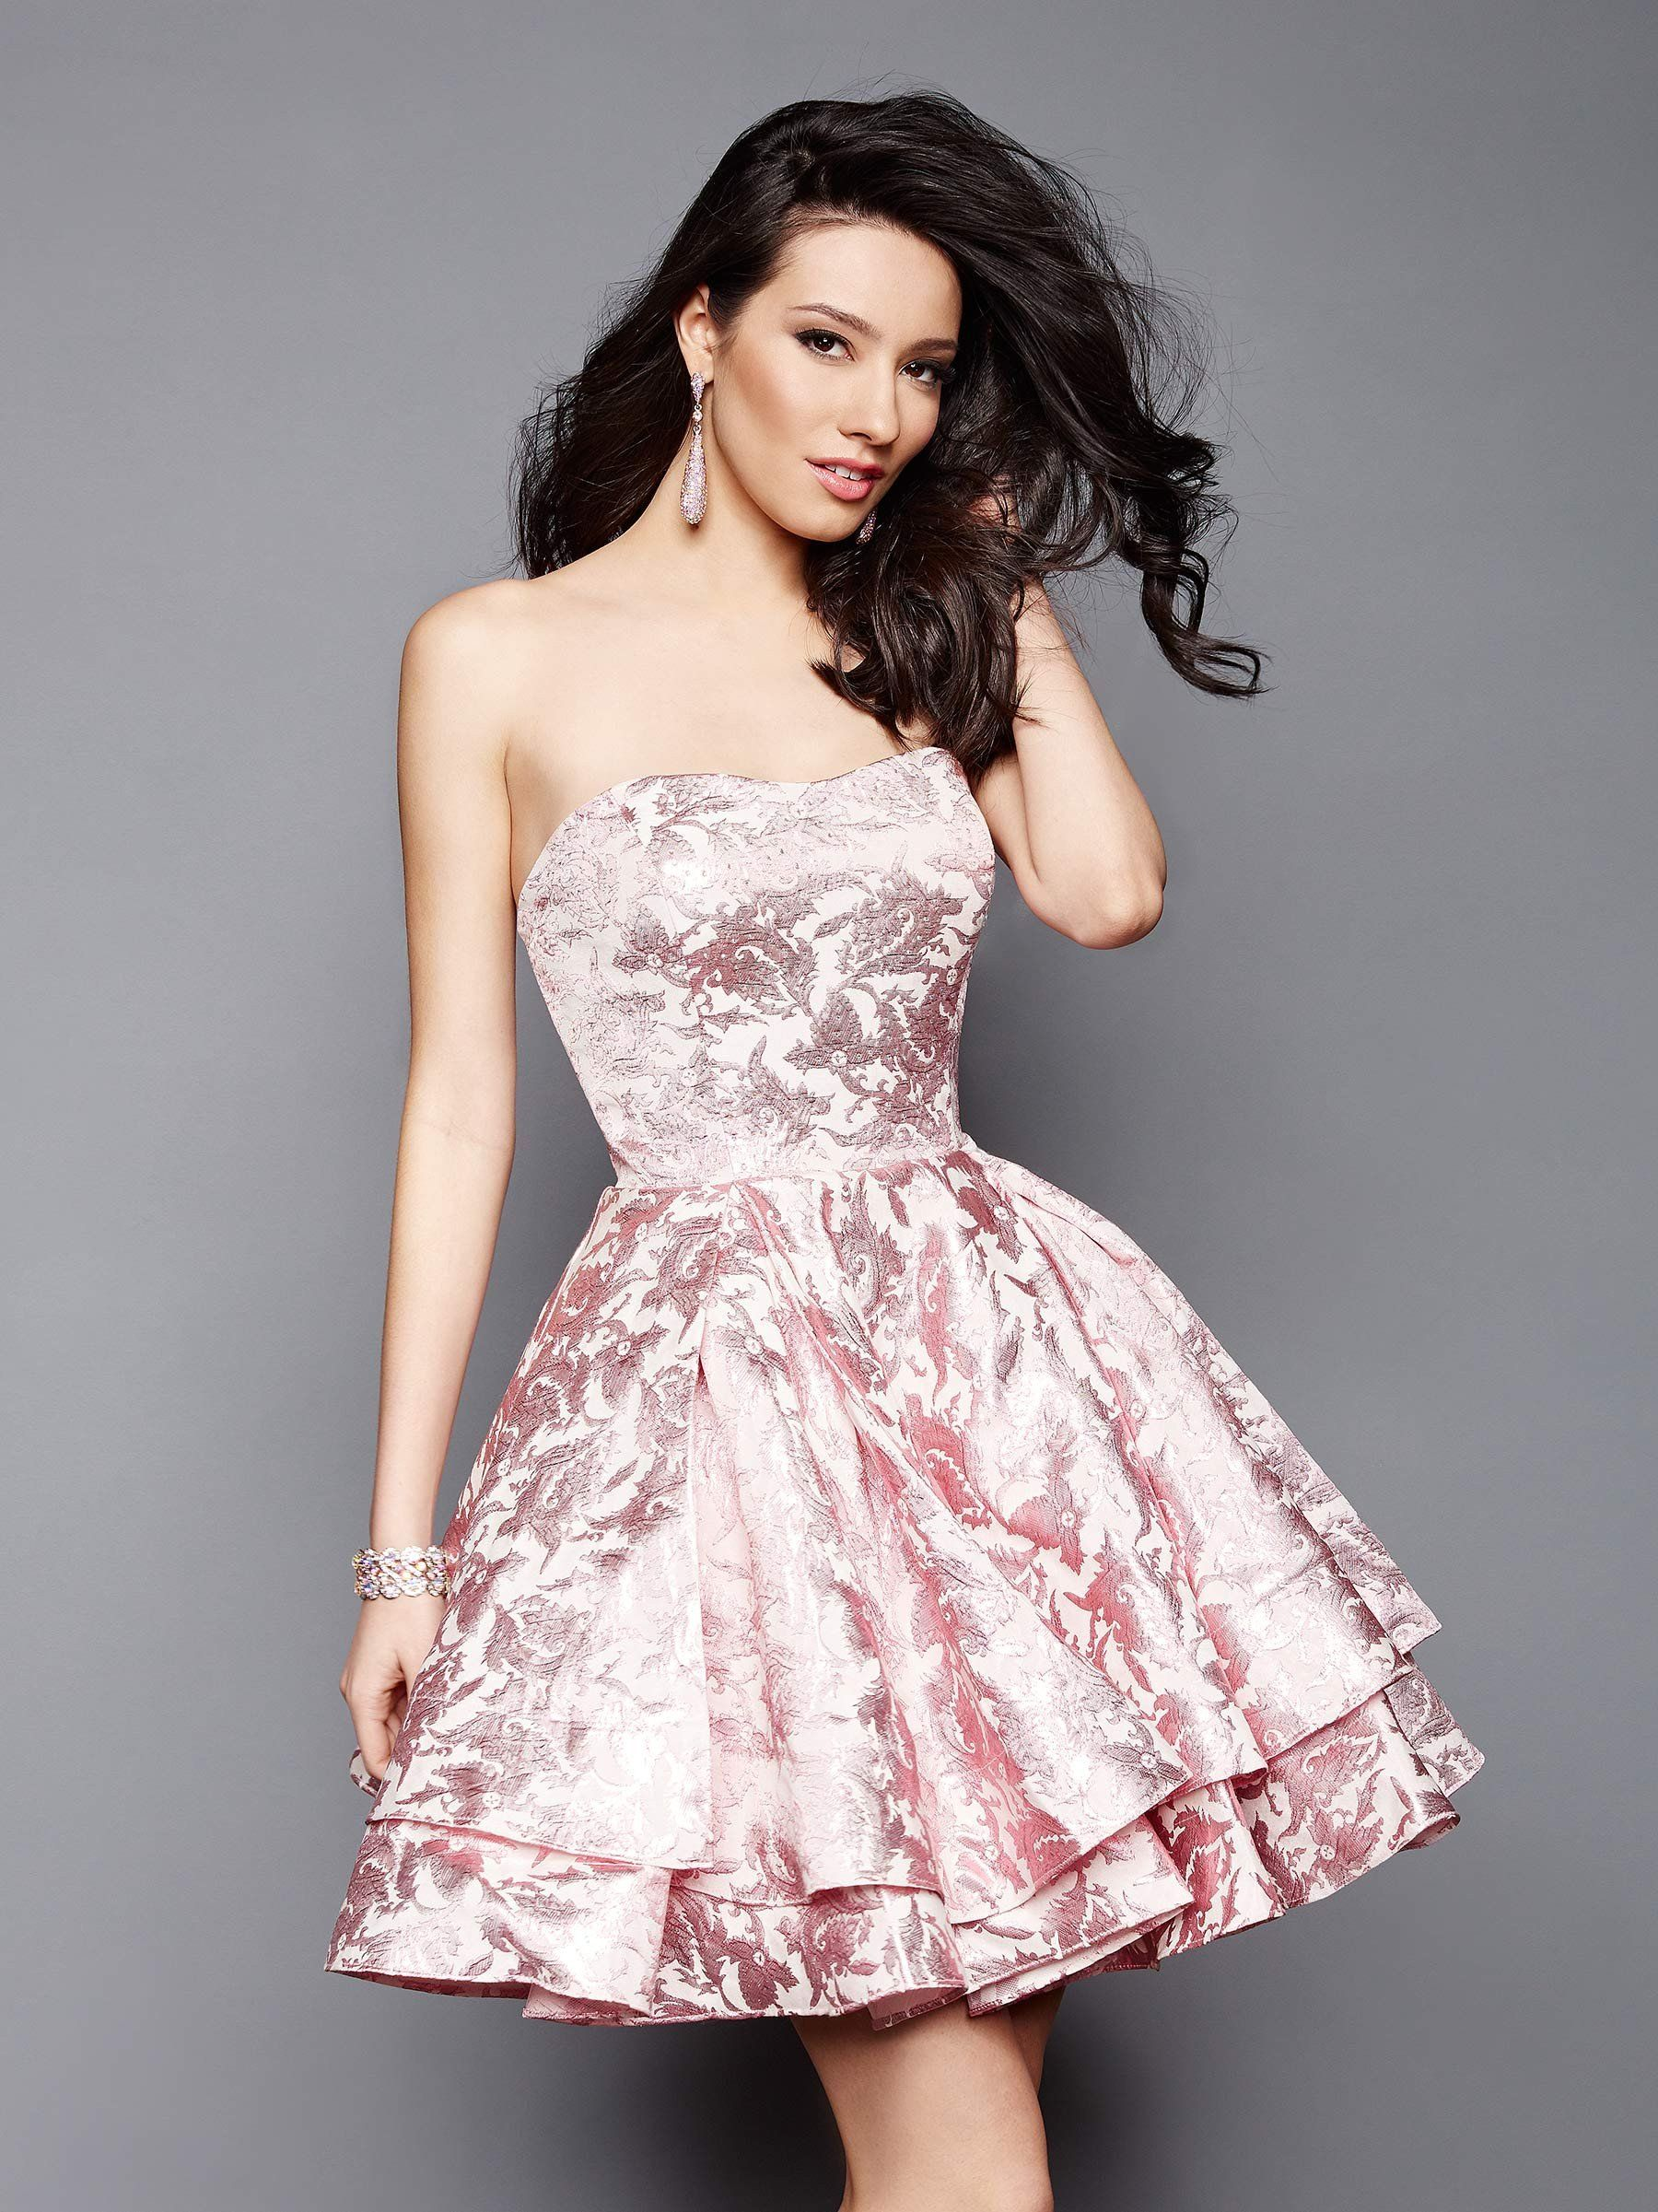 7ddbf51298a Clarisse 3310 Pink Strapless Brocade Homecoming Dress